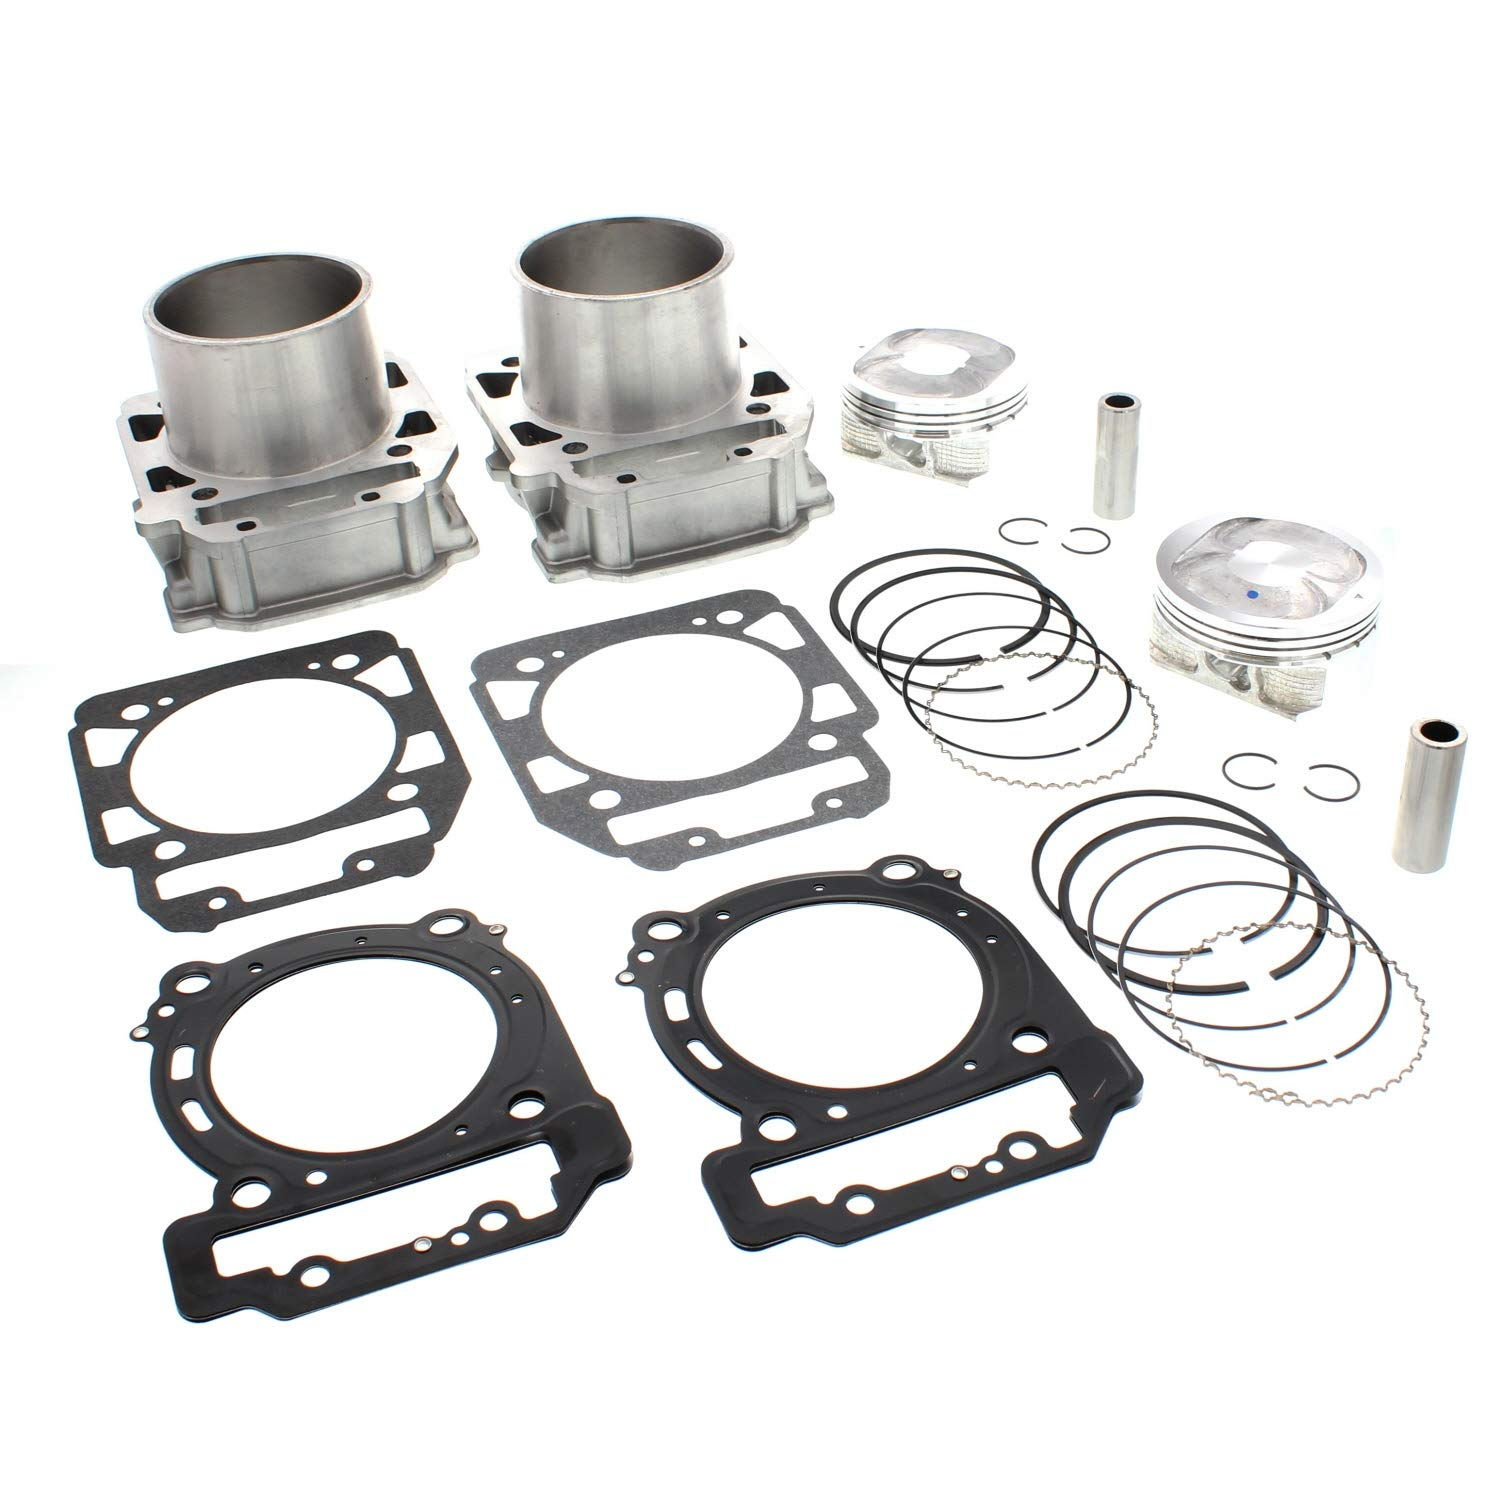 NICHE Front Rear Cylinder Piston Set for Bombardier BRP Can-Am Commander 800 2011-2016 Niche Industries